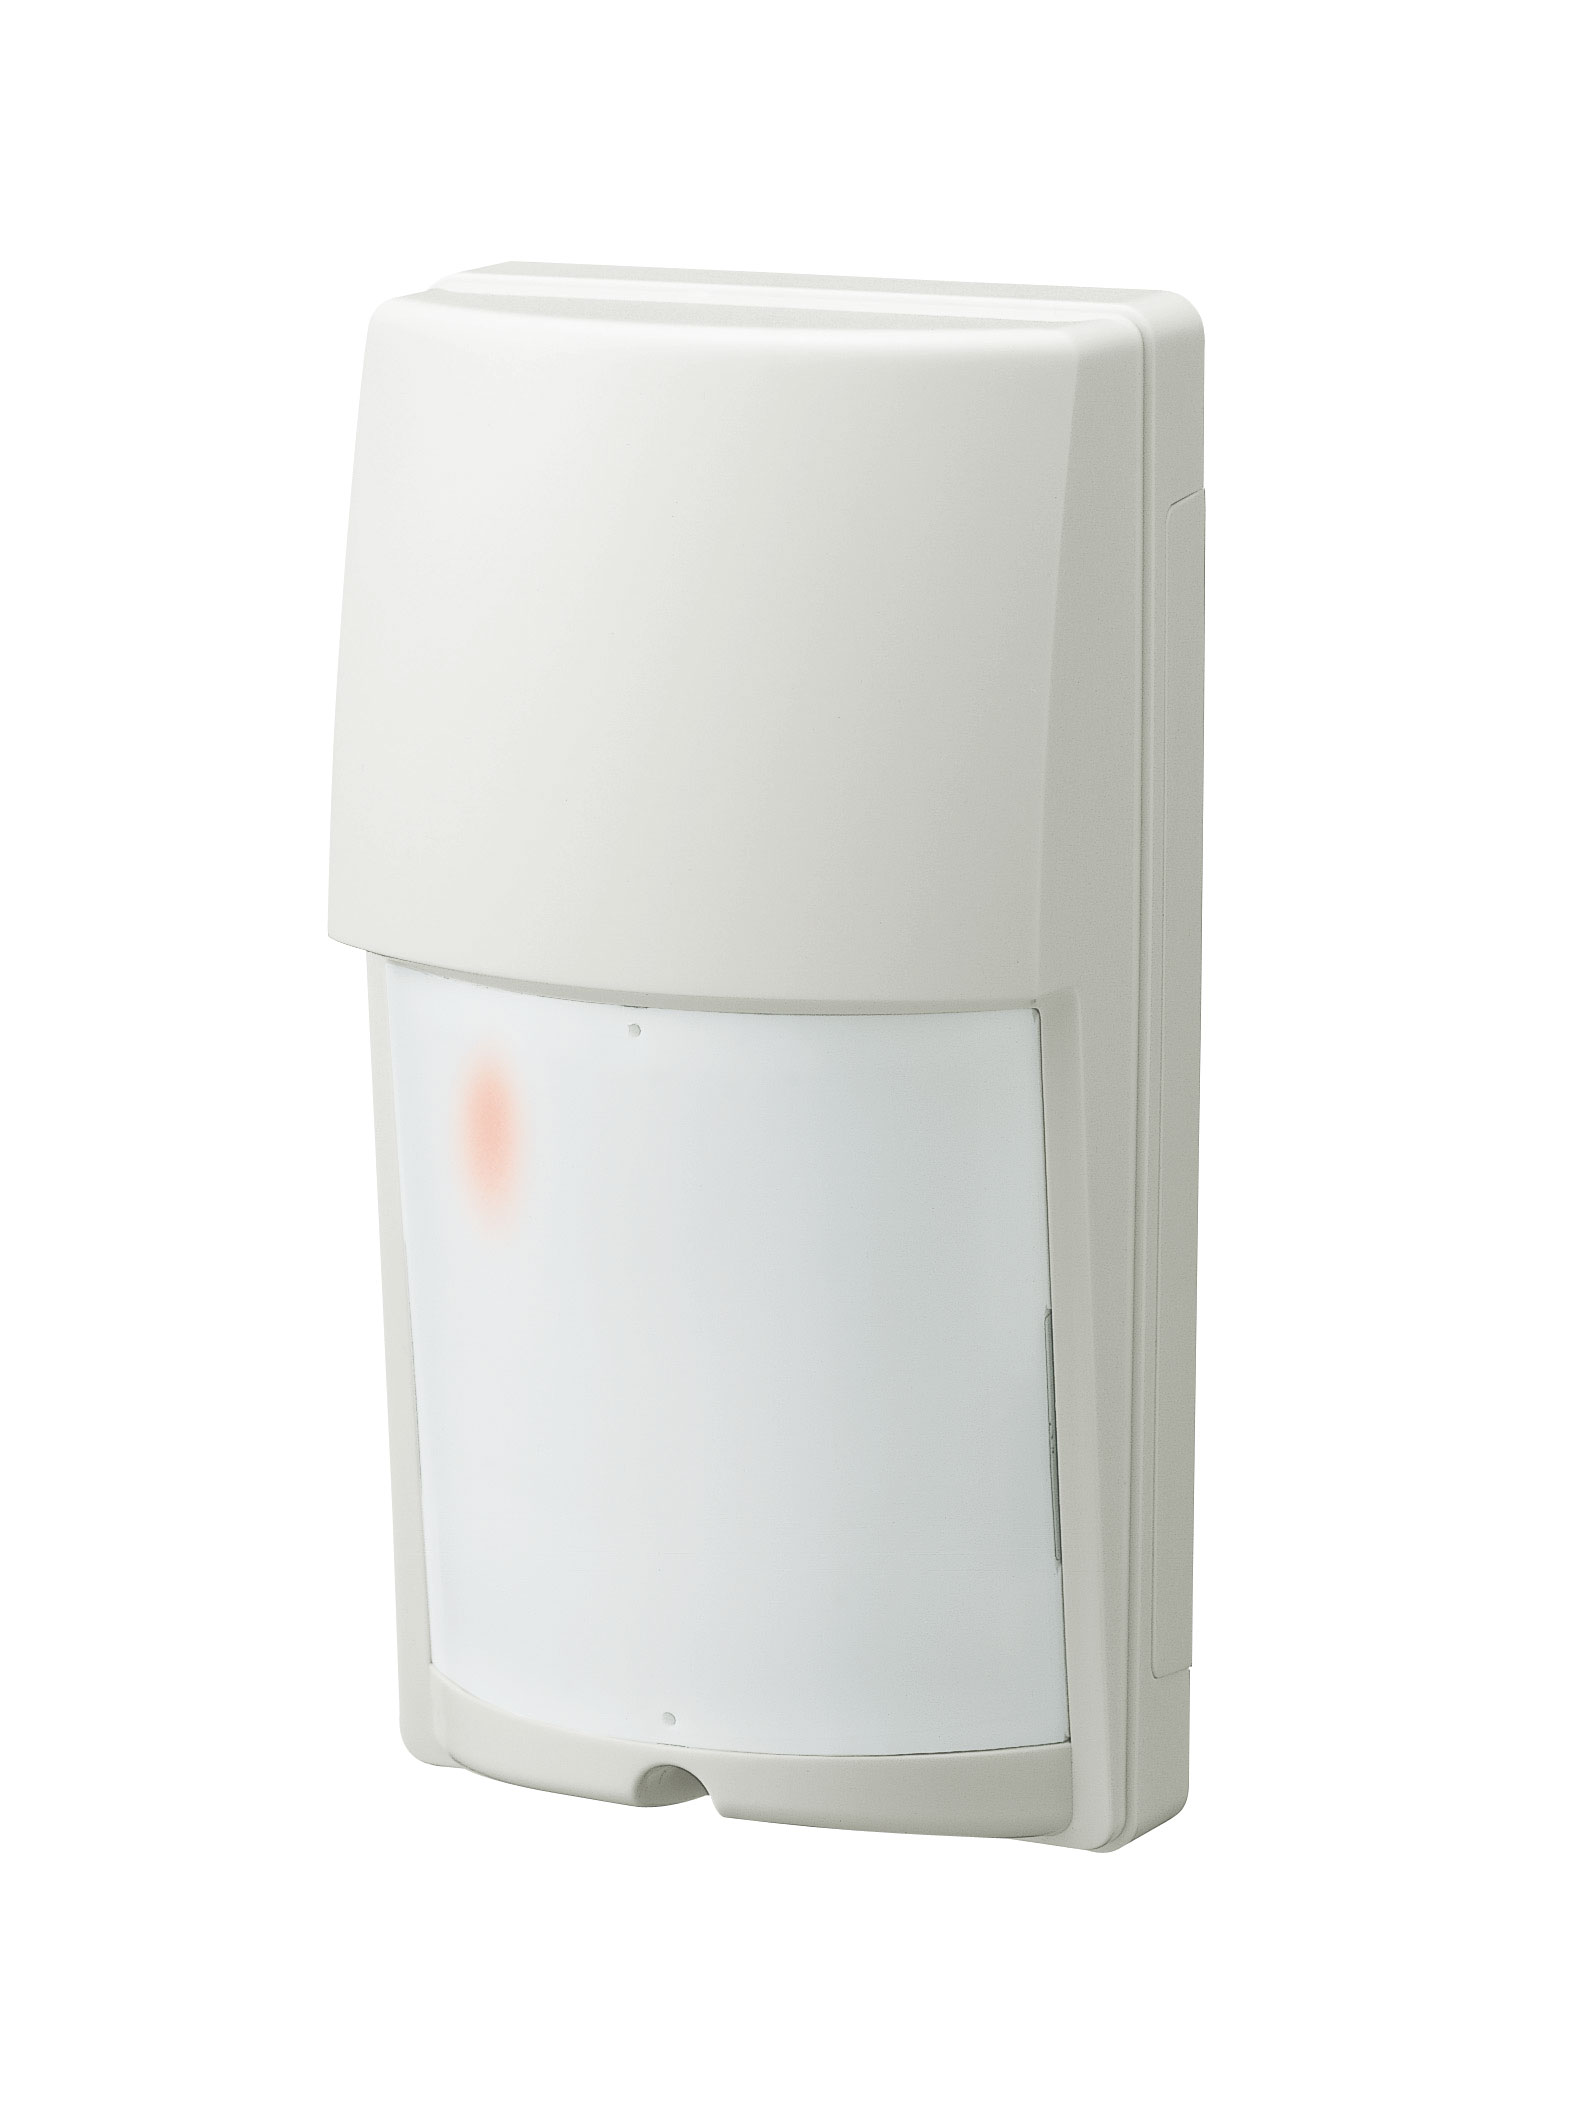 Optex LX-802N 24M Narrow & Long range Outdoor Alarm Detector